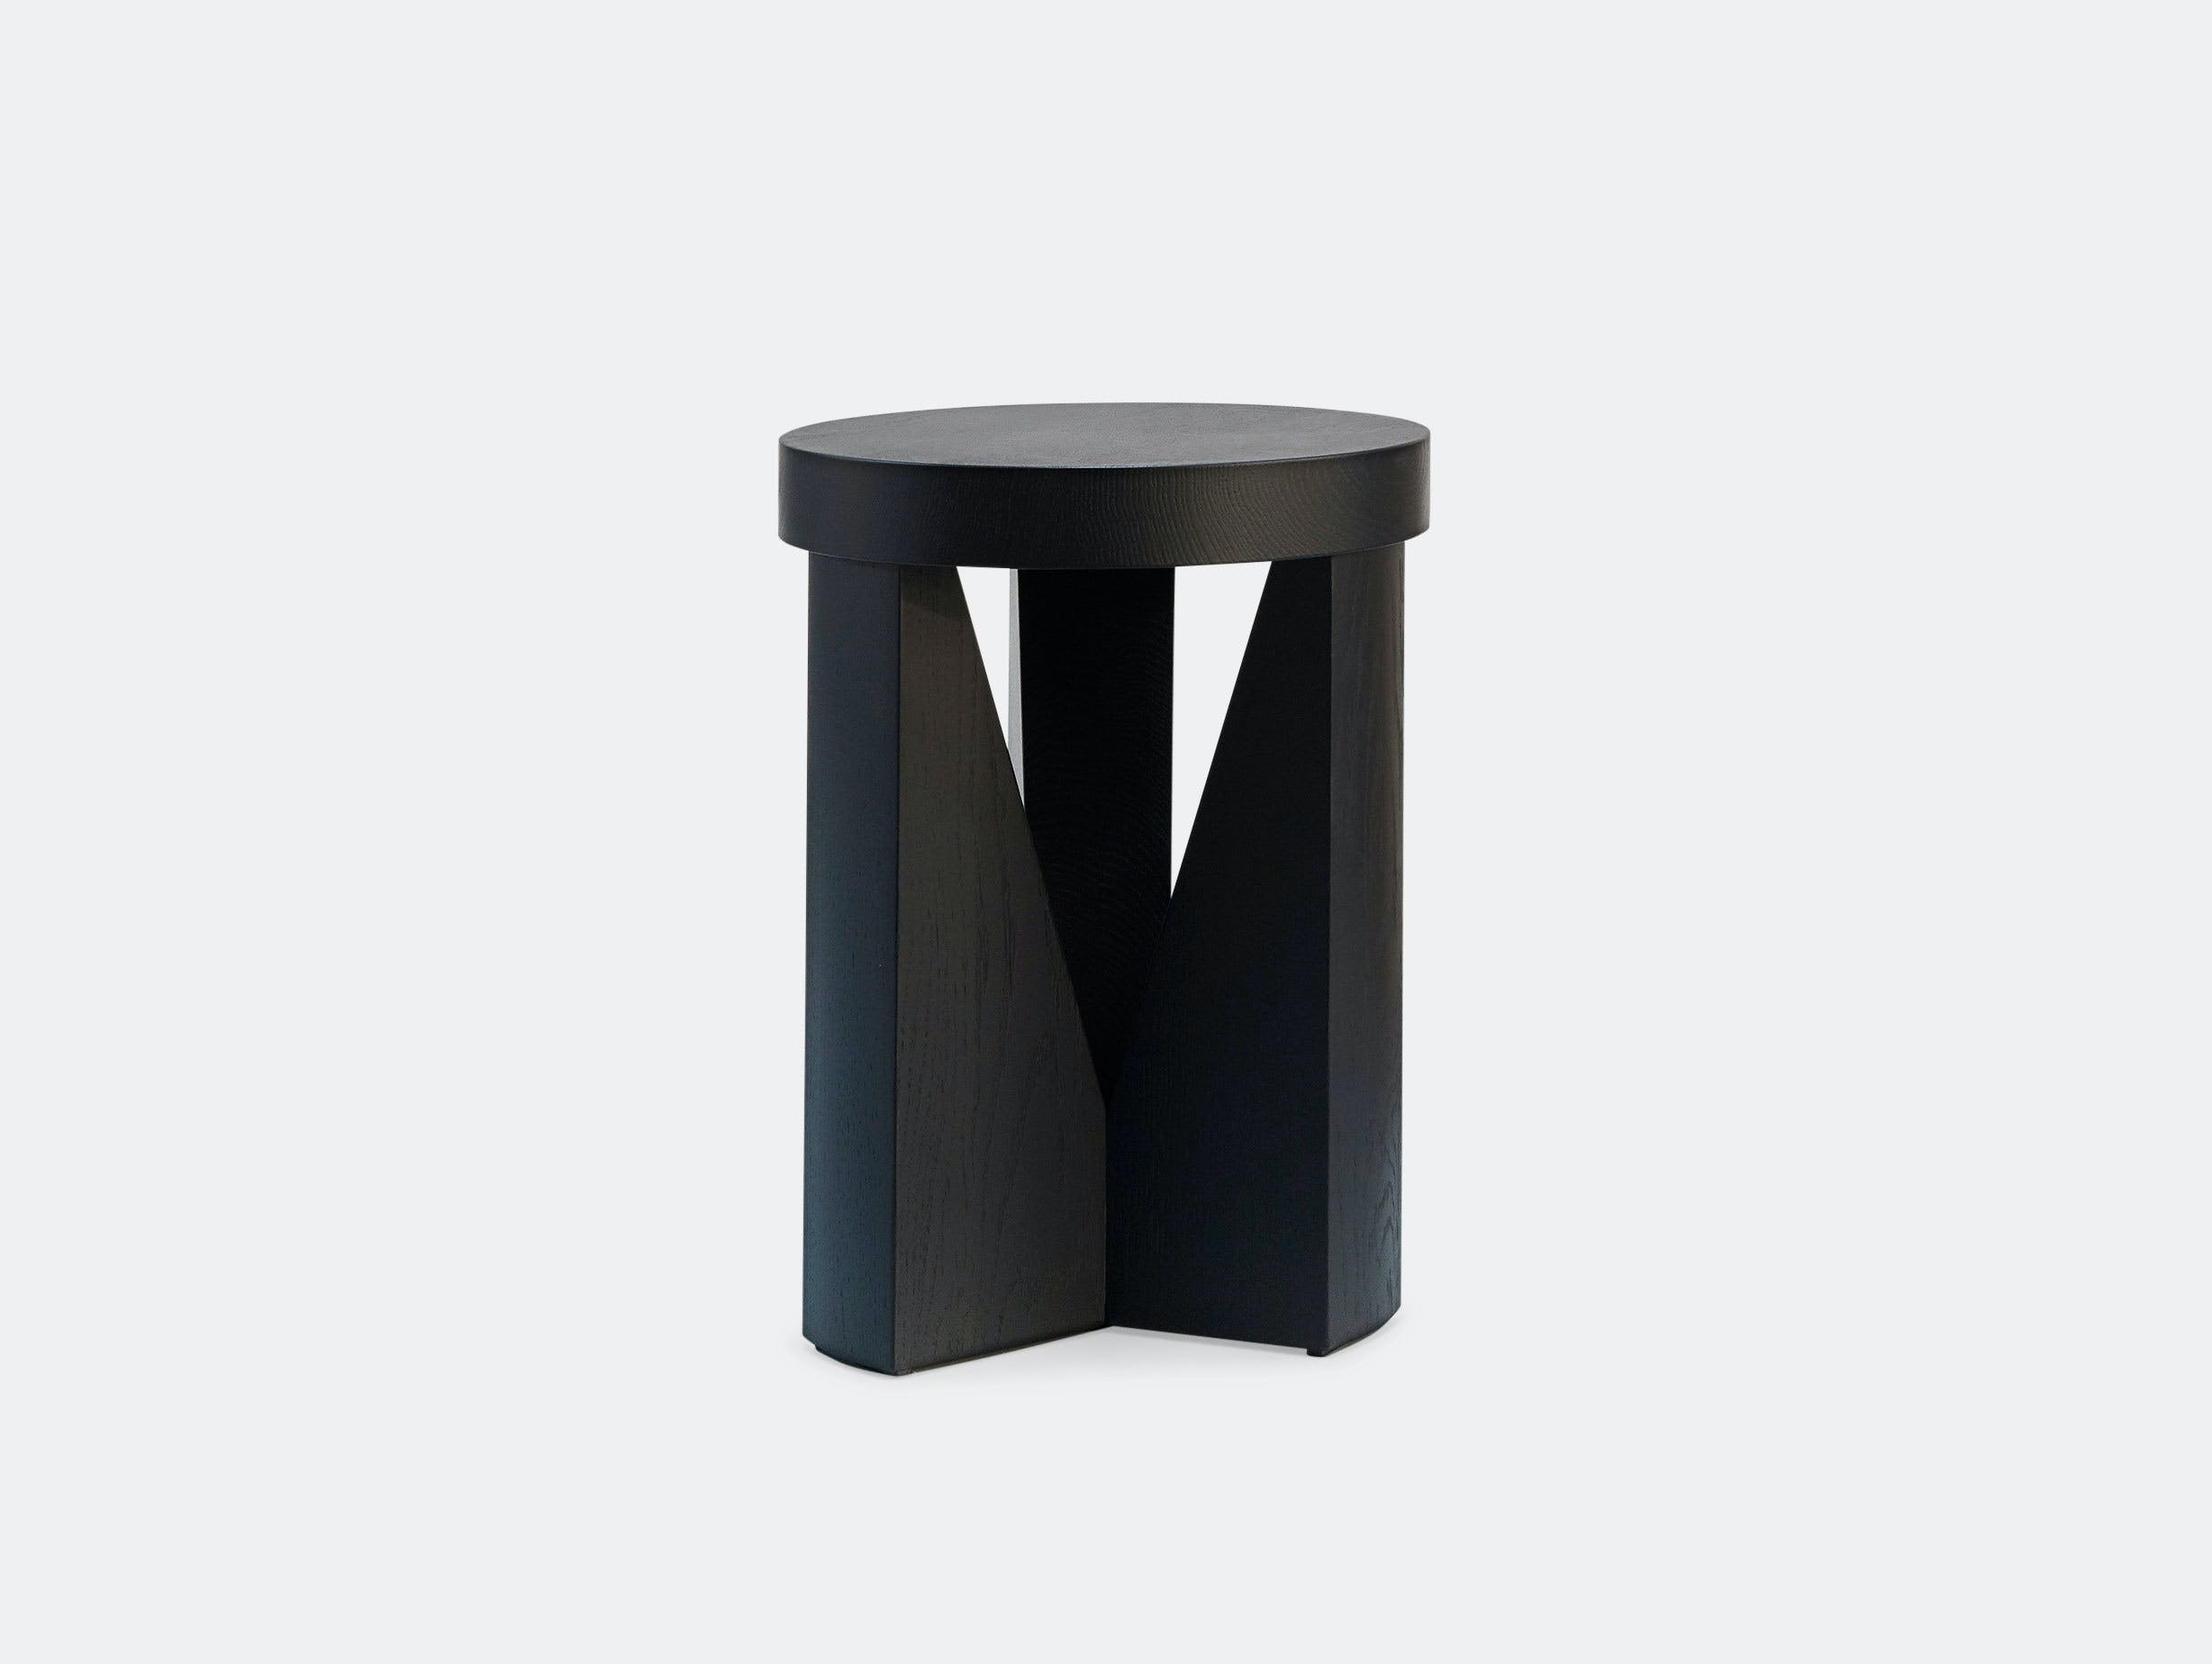 Mattiazzi Cugino Stool Table Oak Black Konstantin Grcic